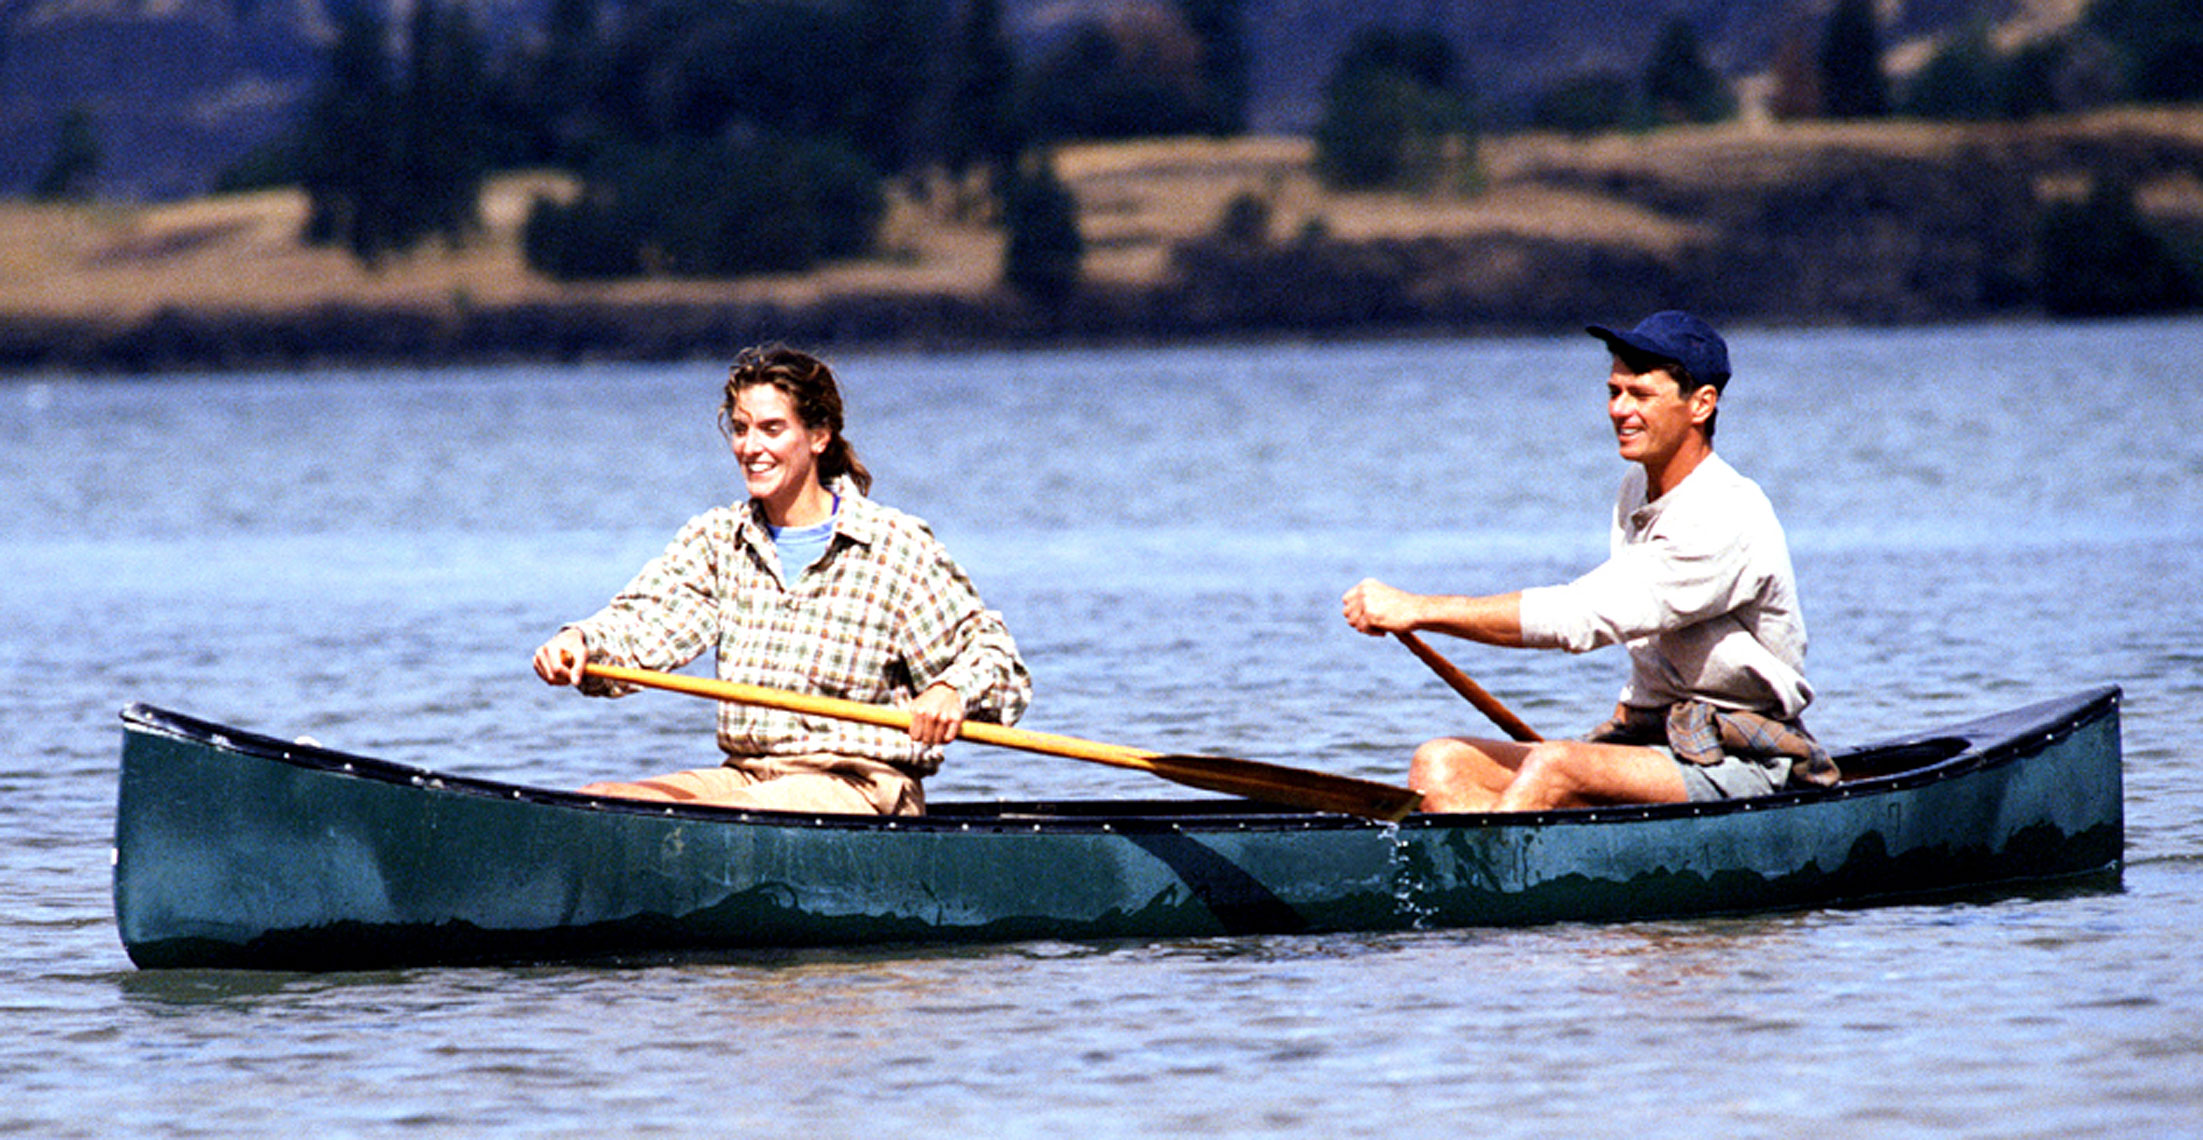 guy-girl-canoe_2w.jpg